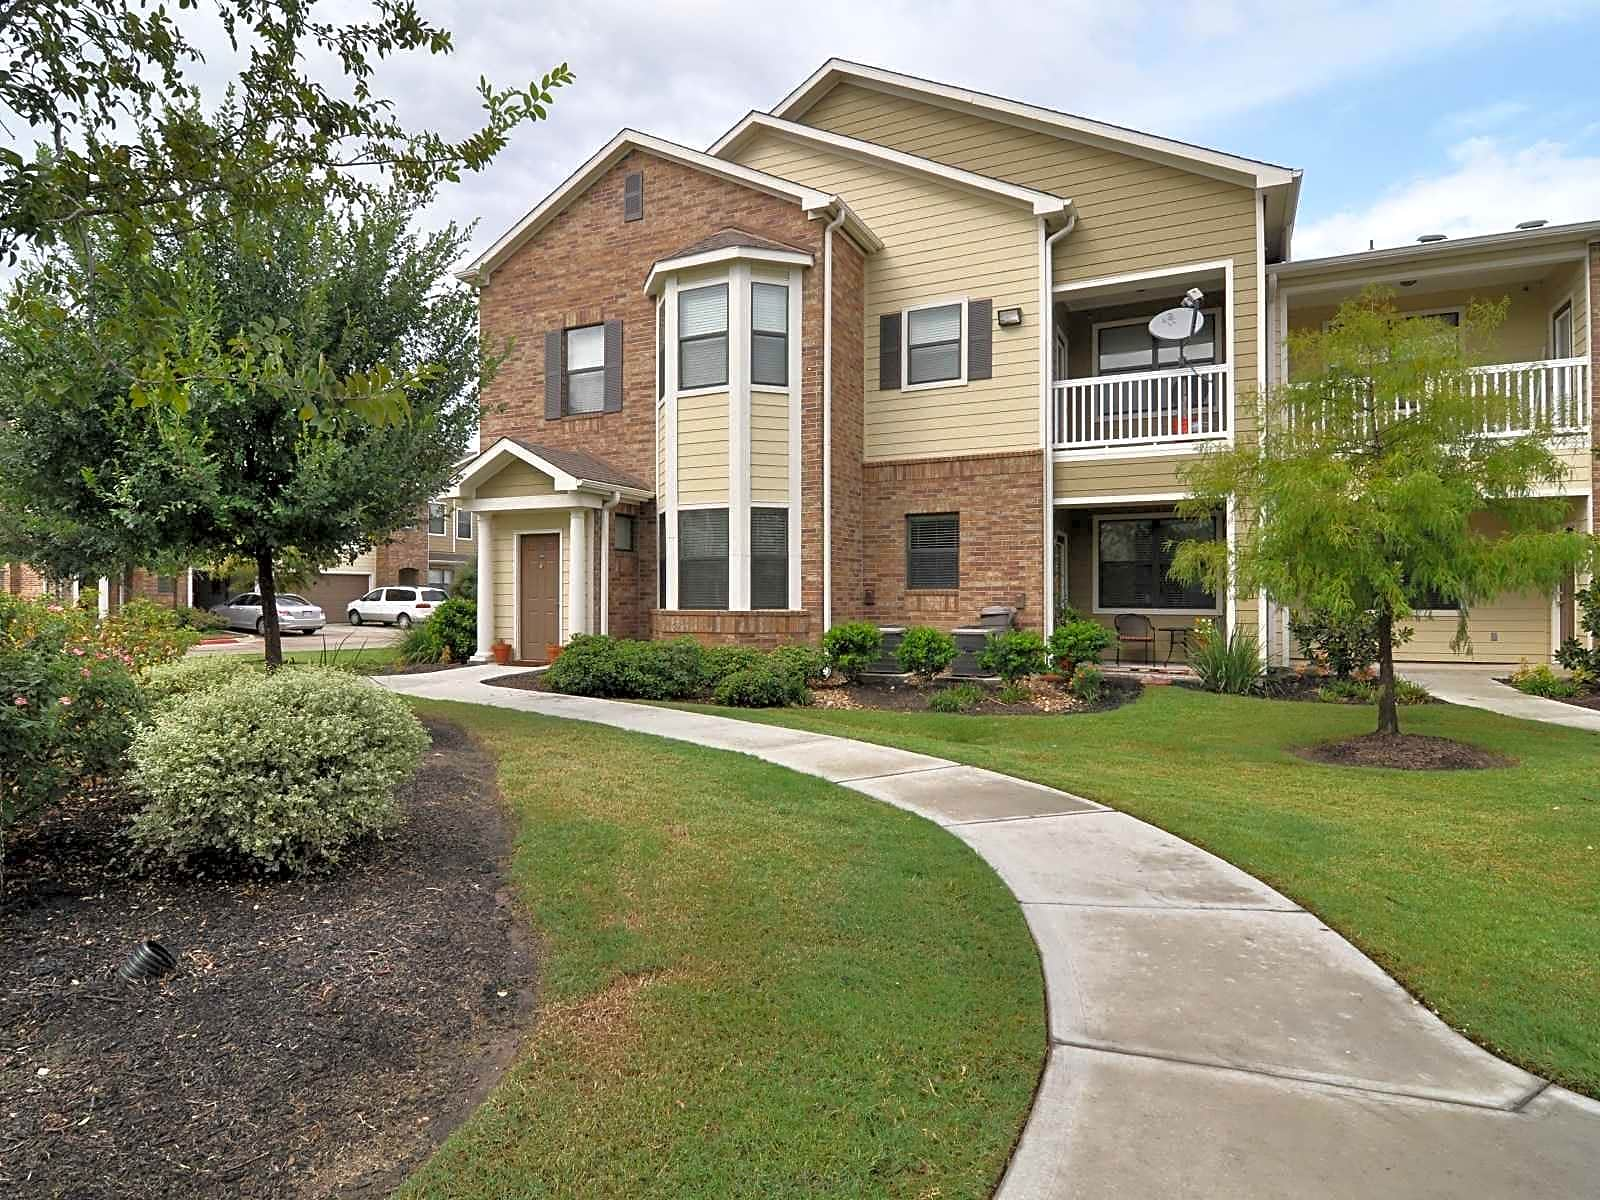 Photo: Katy Apartment for Rent - $1005.00 / month; 1 Bd & 1 Ba